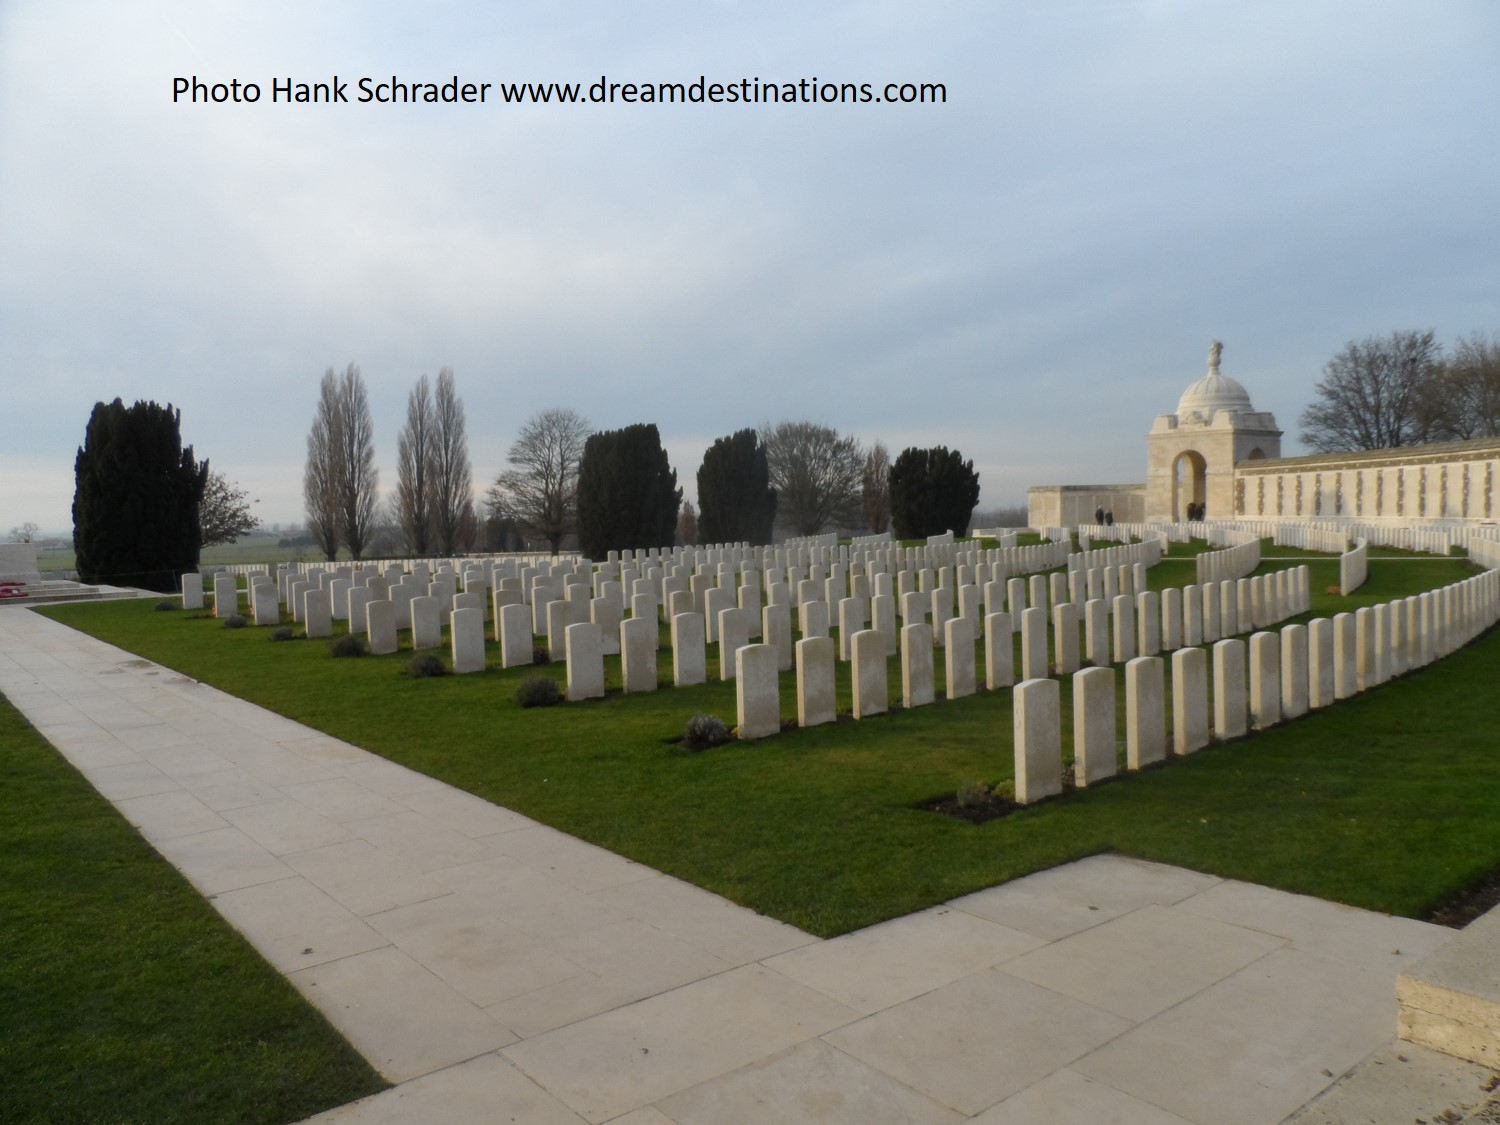 Tyne Cot Cemetery and Memorial